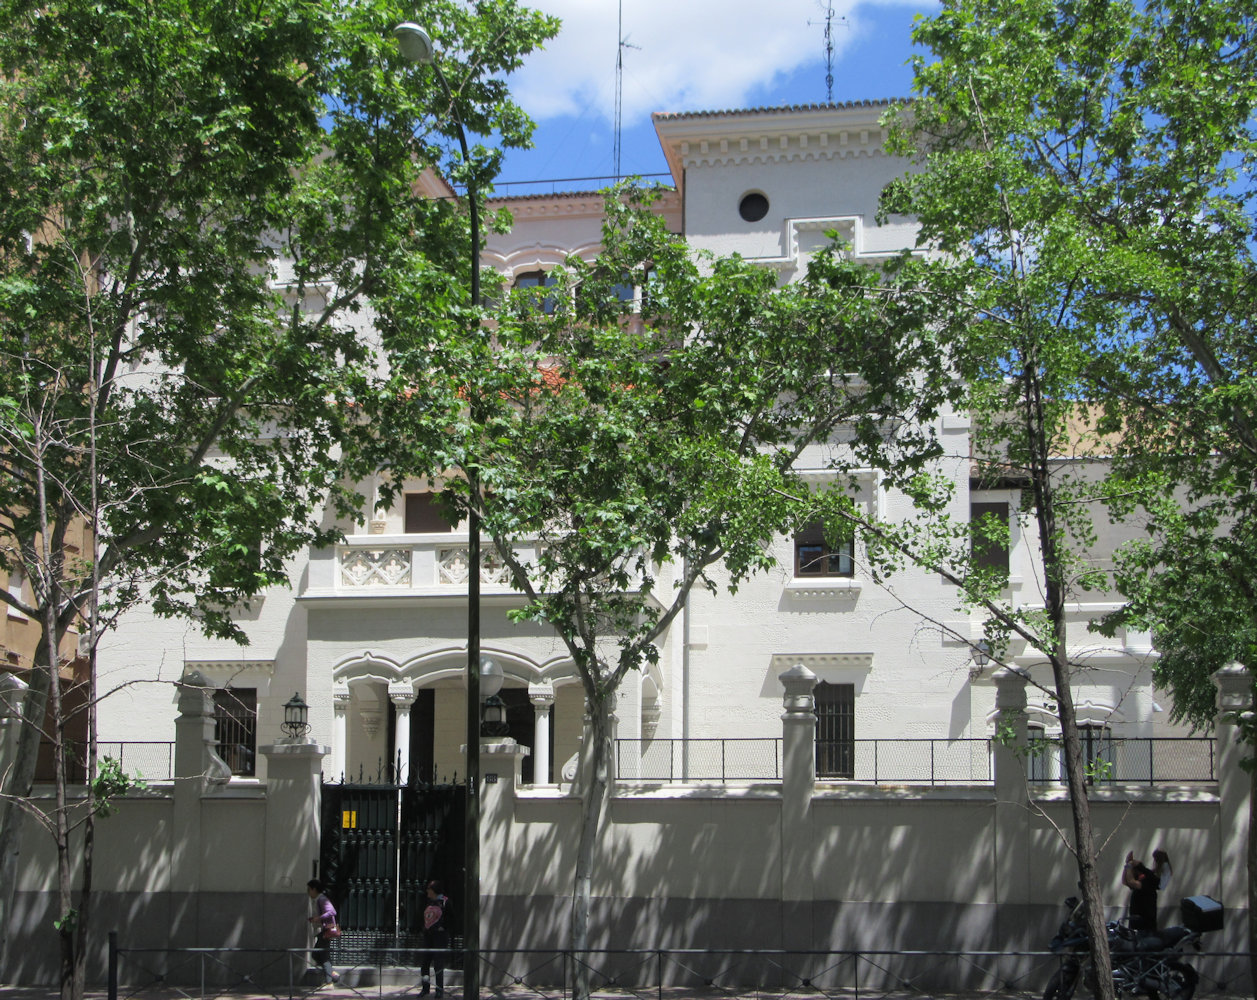 Institut Teresiana in Madrid